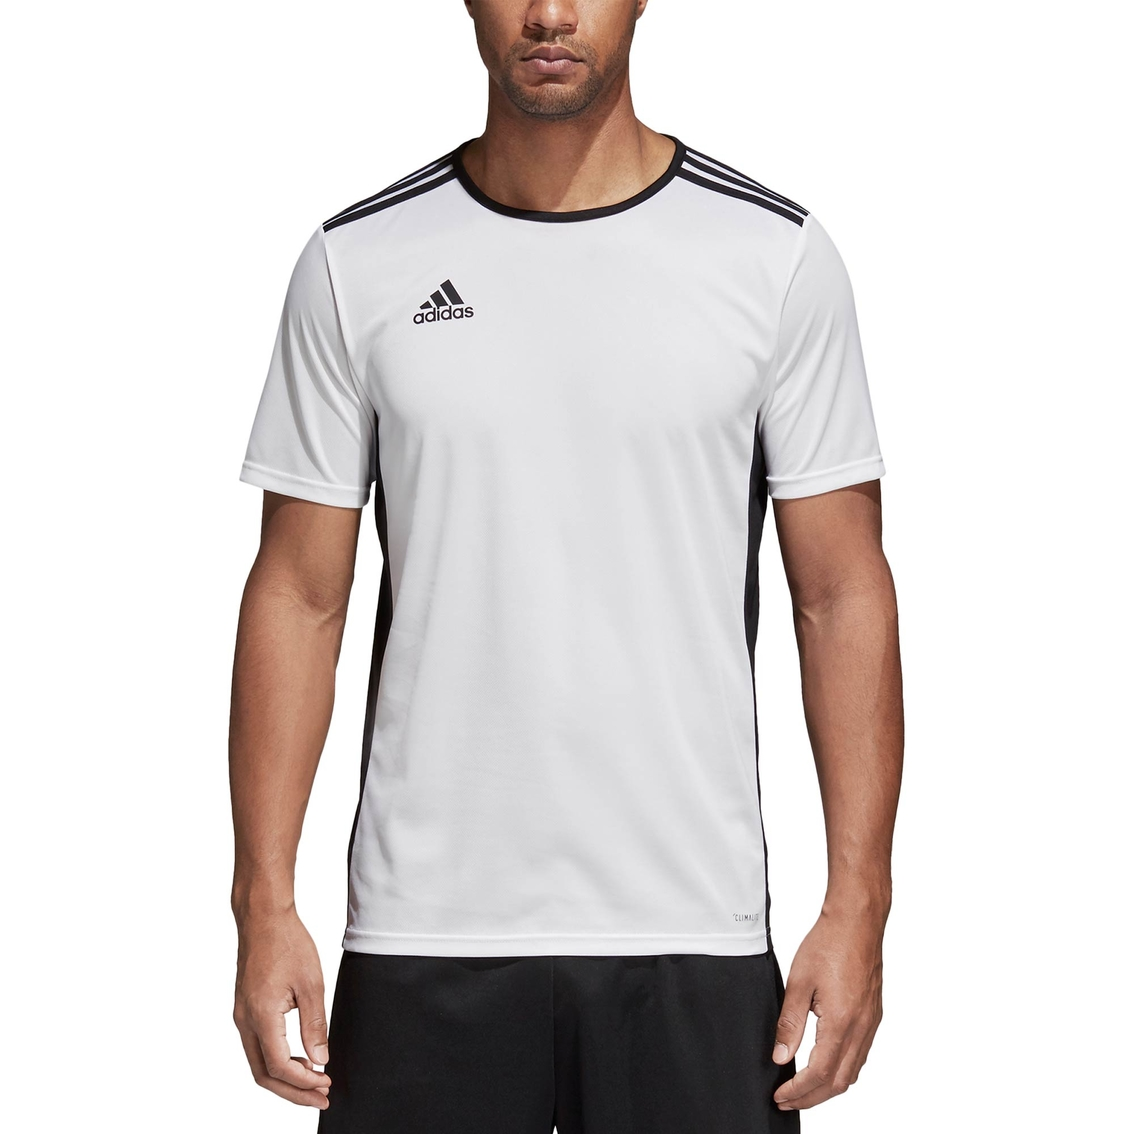 Adidas Entrada Soccer Jersey | Shirts | Clothing & Accessories ...